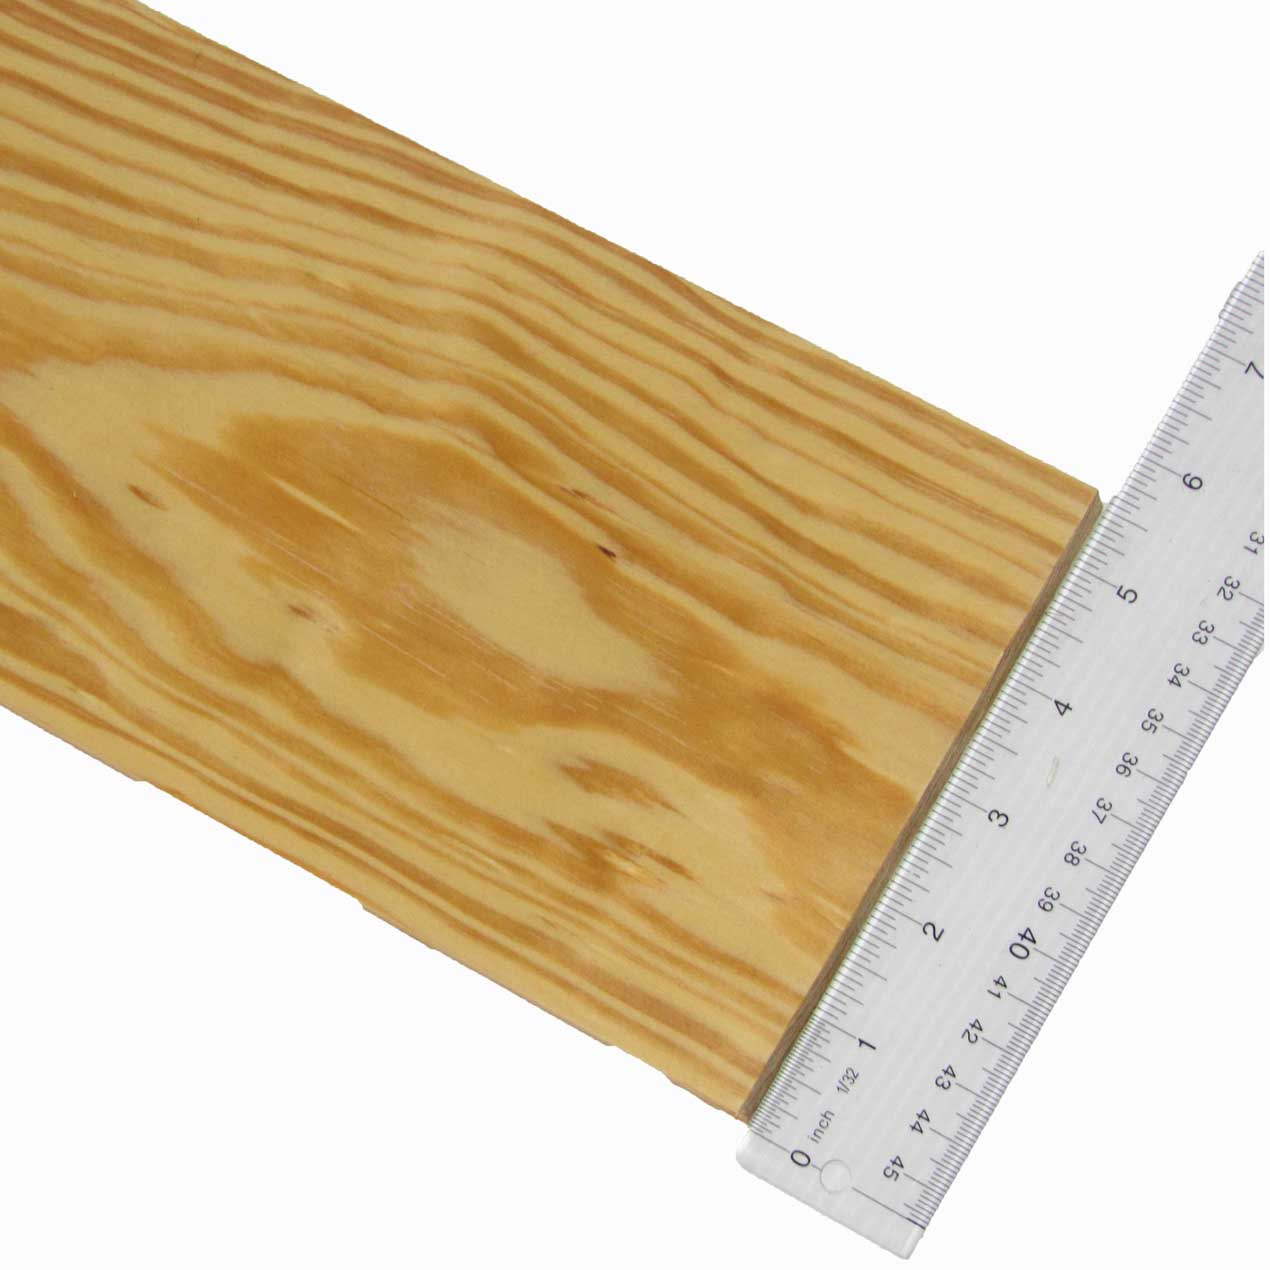 1/2x6 Clear Yellow Pine Lumber, S4S - Capitol City Lumber